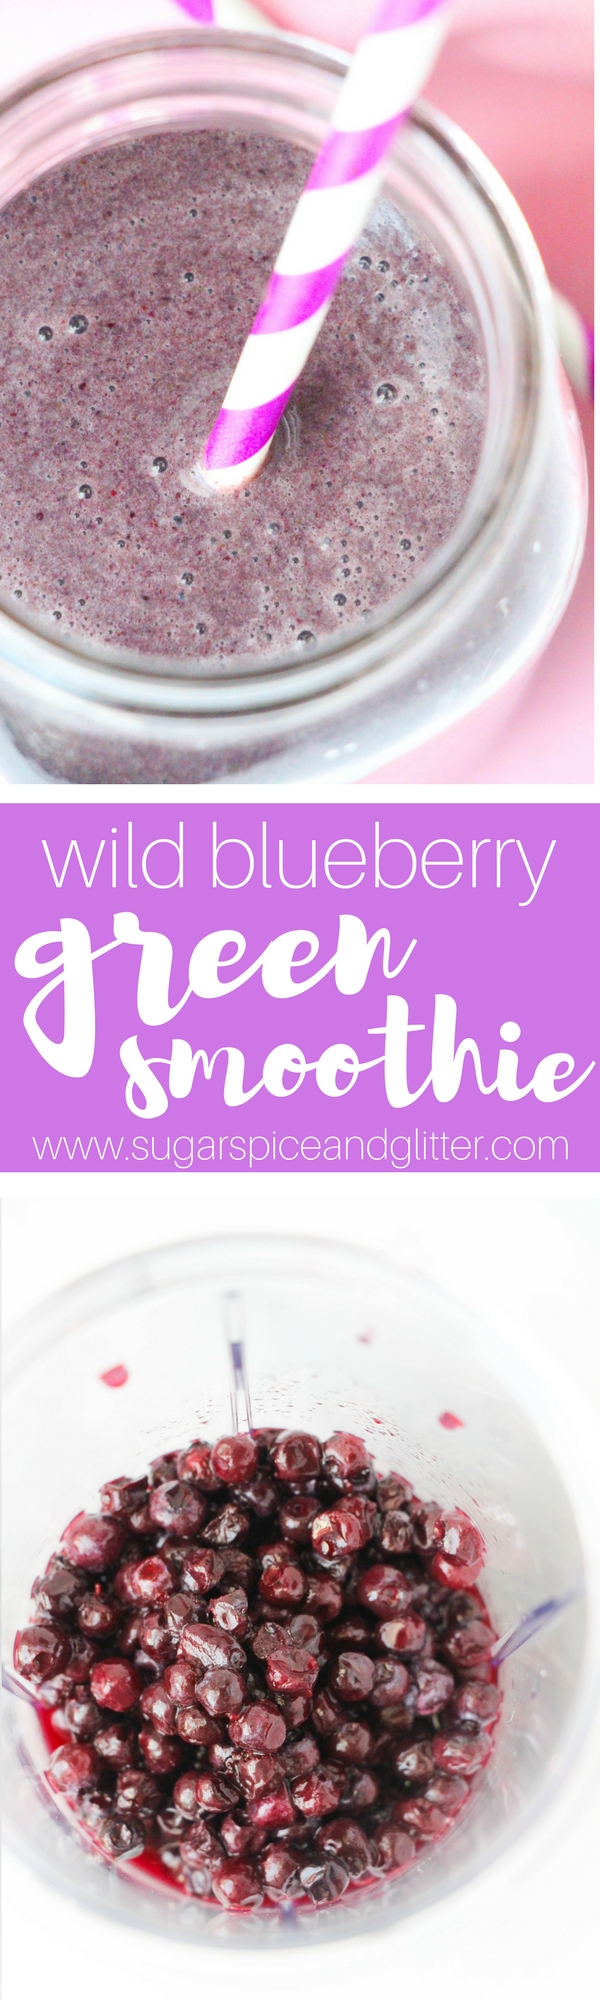 Wild Blueberry Spinach Smoothie - a delicious green smoothie without the green color, perfect for kids